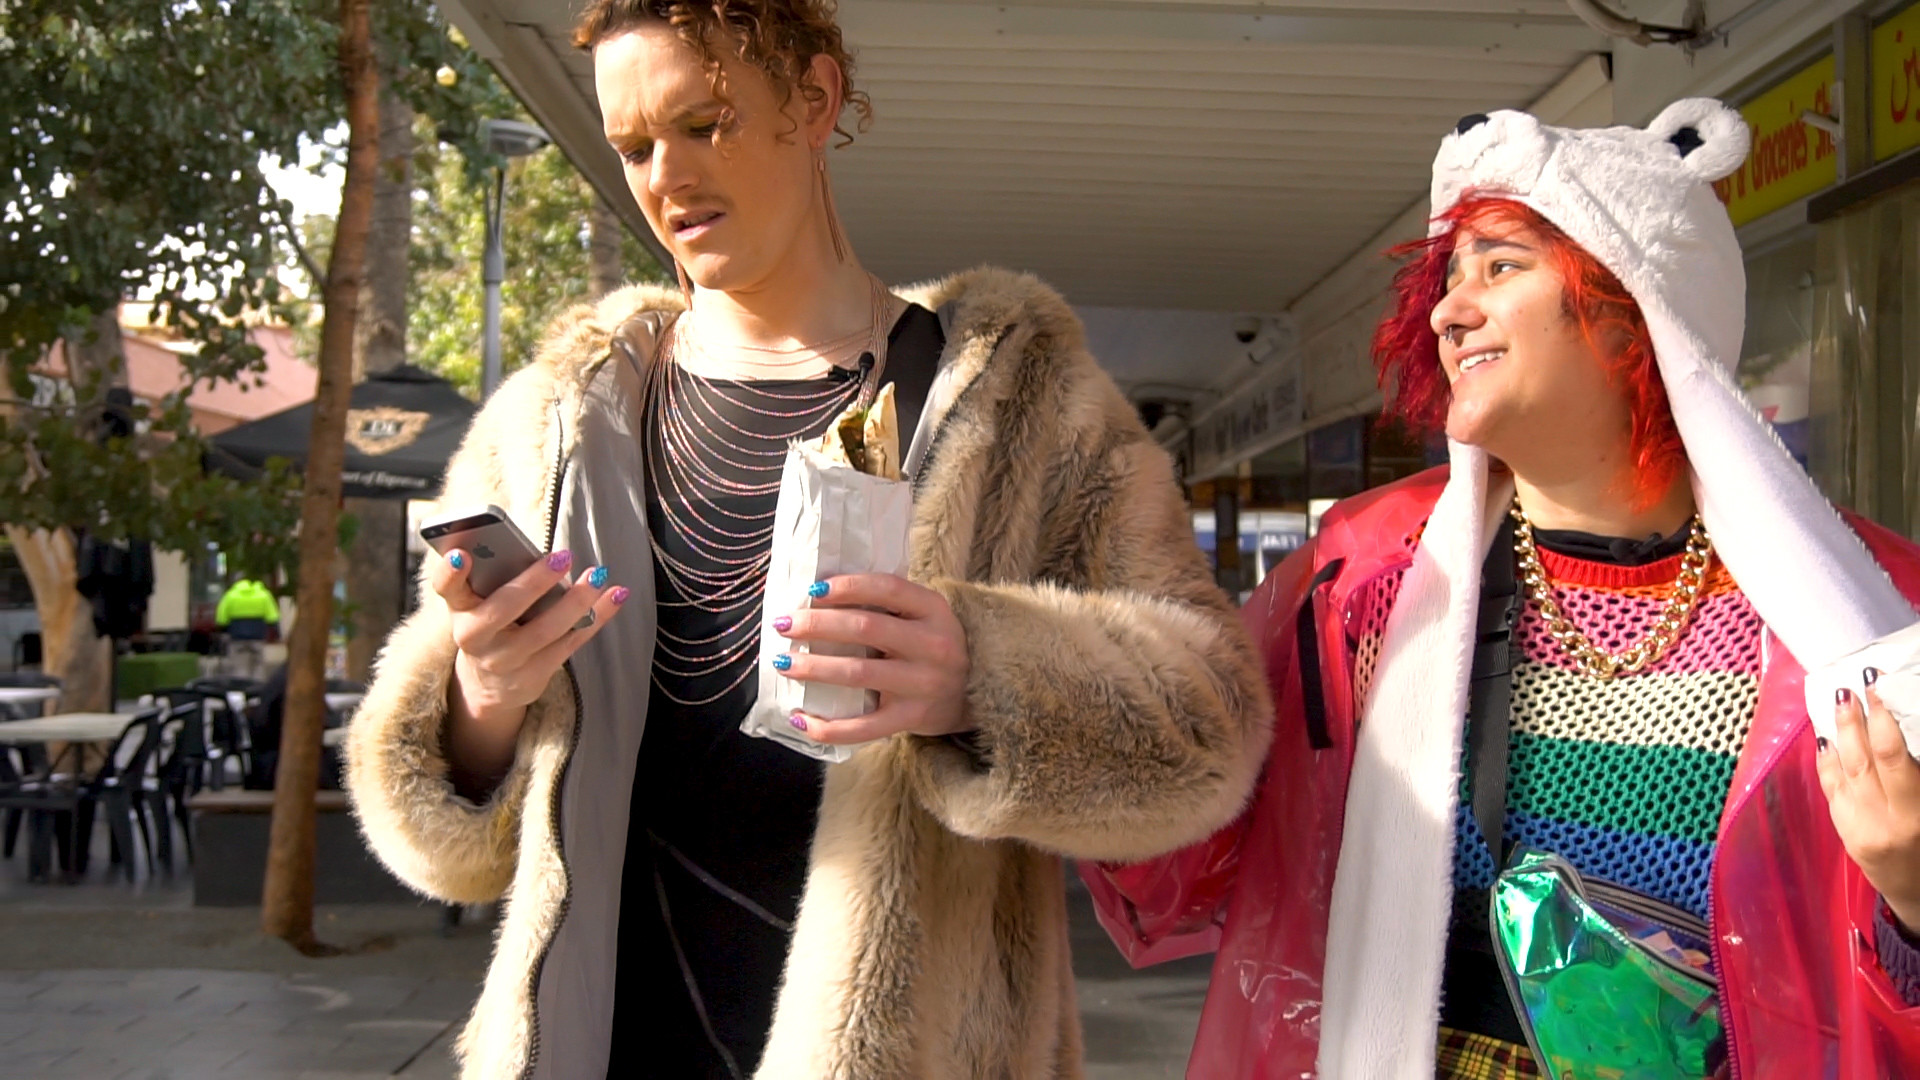 Two nonbinary friends in eccentric clothing look at a phone